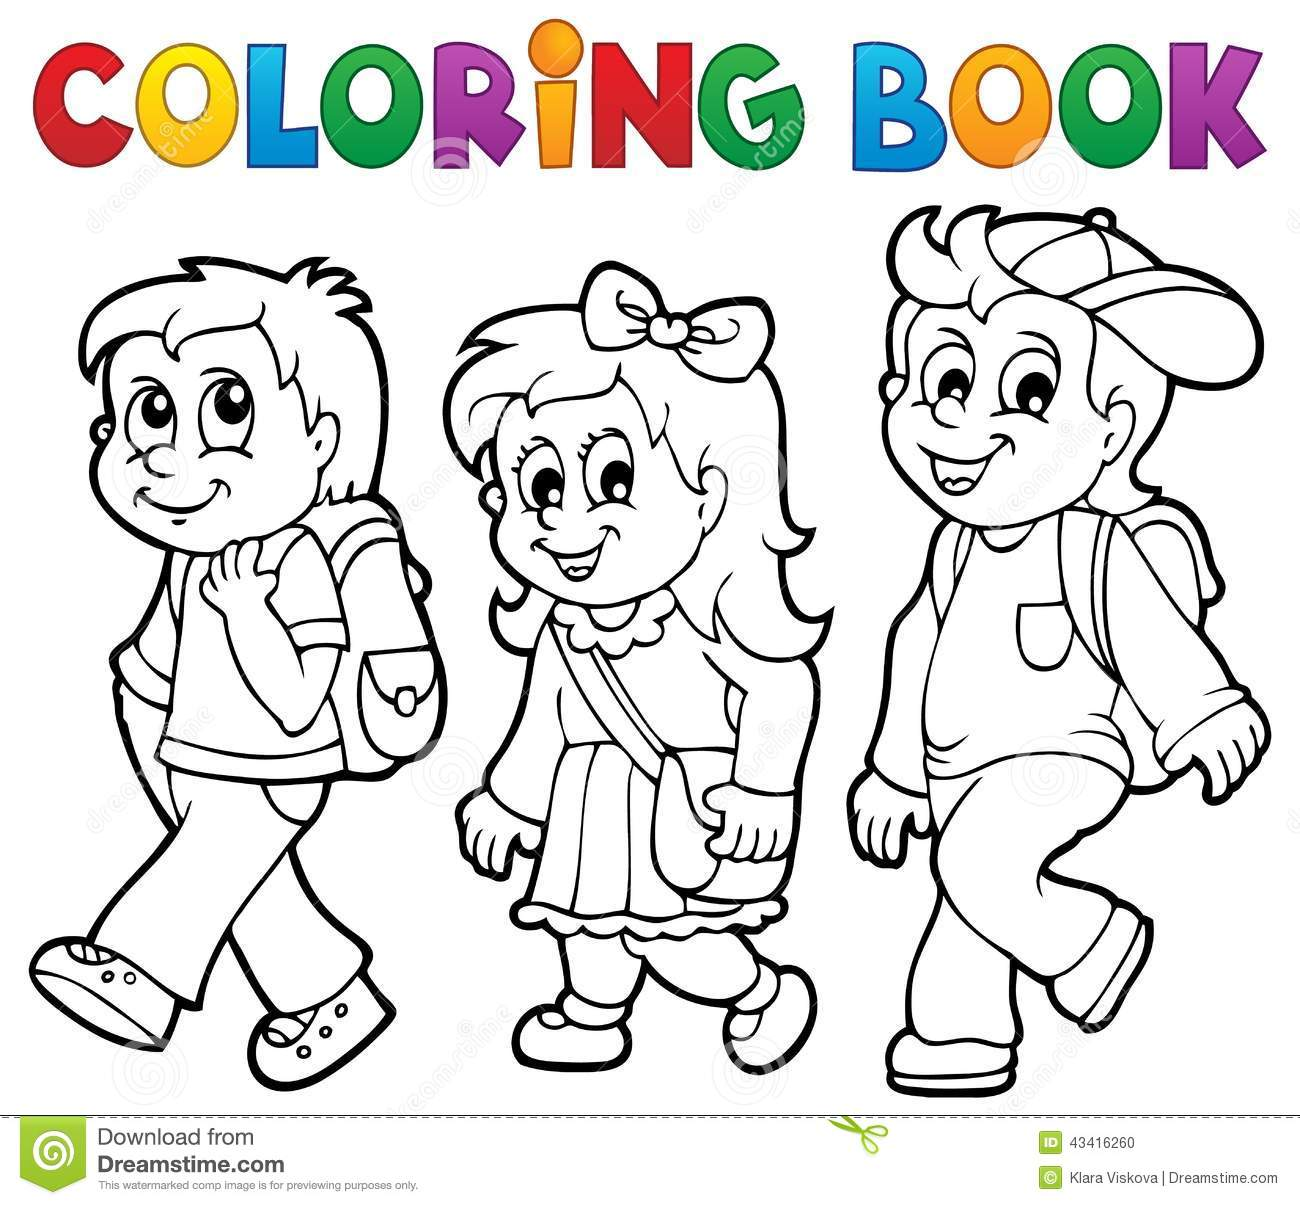 funny children coloring book corruptions 26 kids coloring book - Children Coloring Book